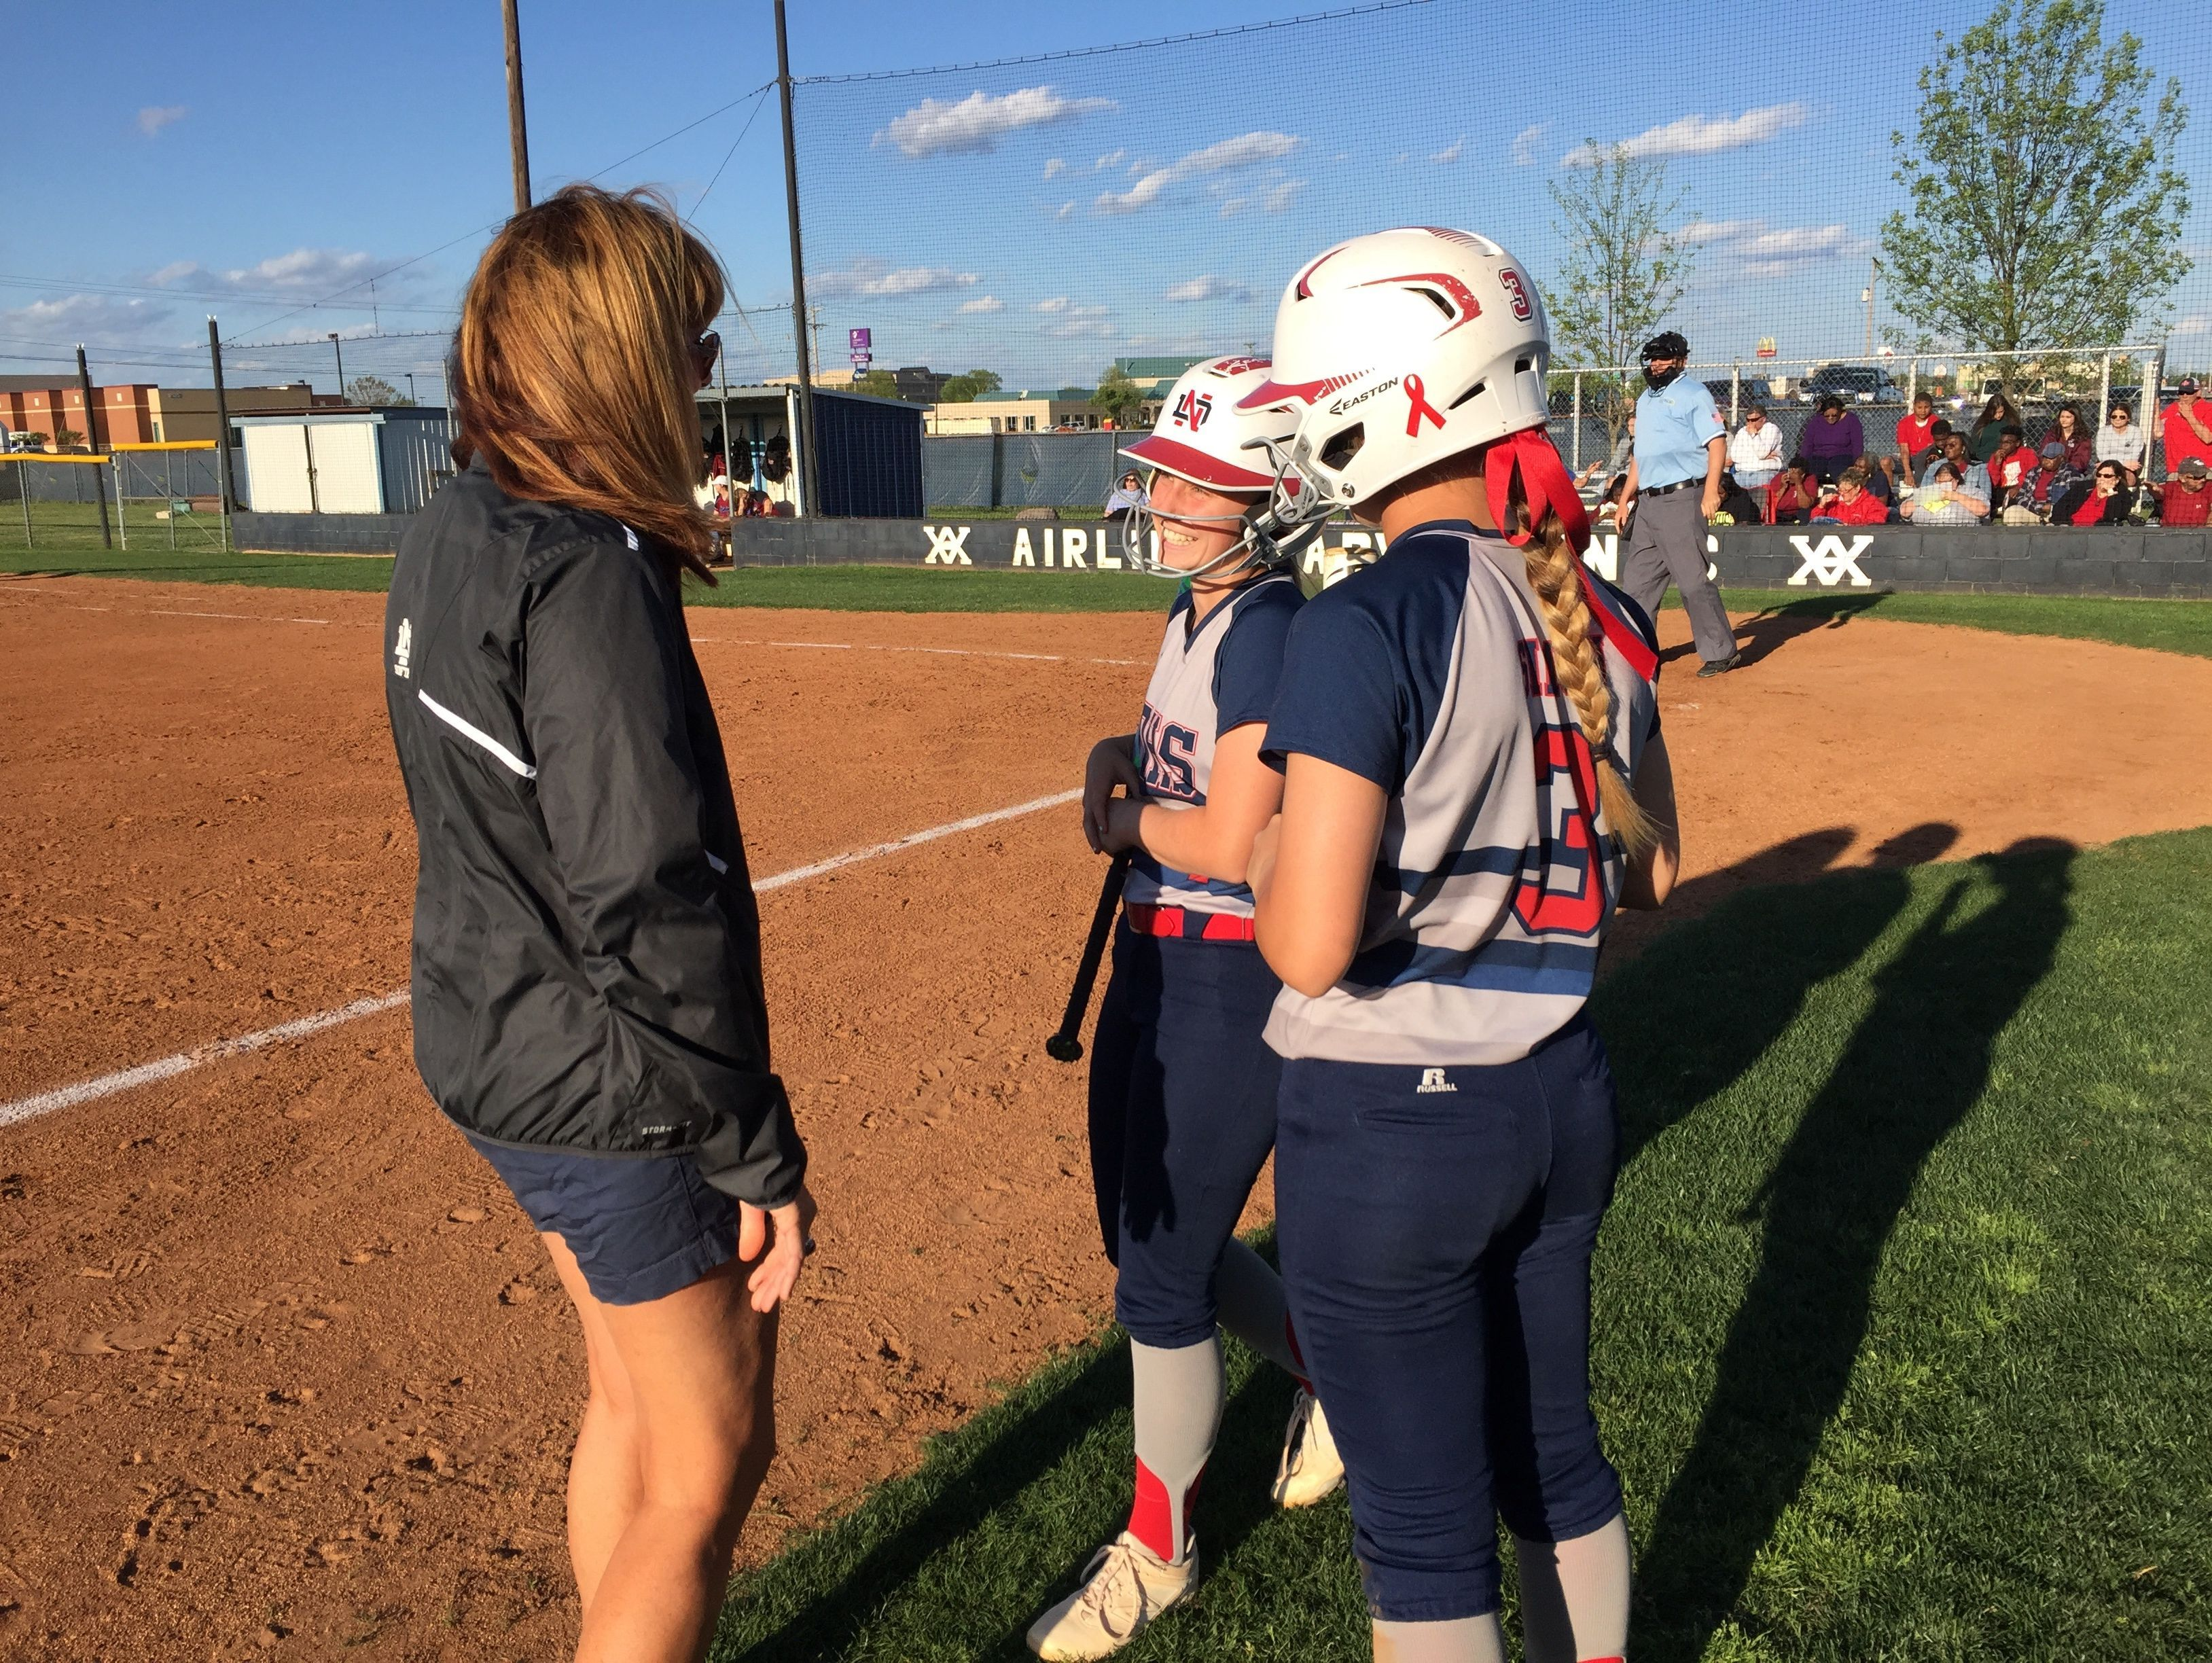 North DeSoto coach Lori McFerren discuses a play with Amber Giddens and Bayli Simon during Thursday's game with Minden at the Airline field.